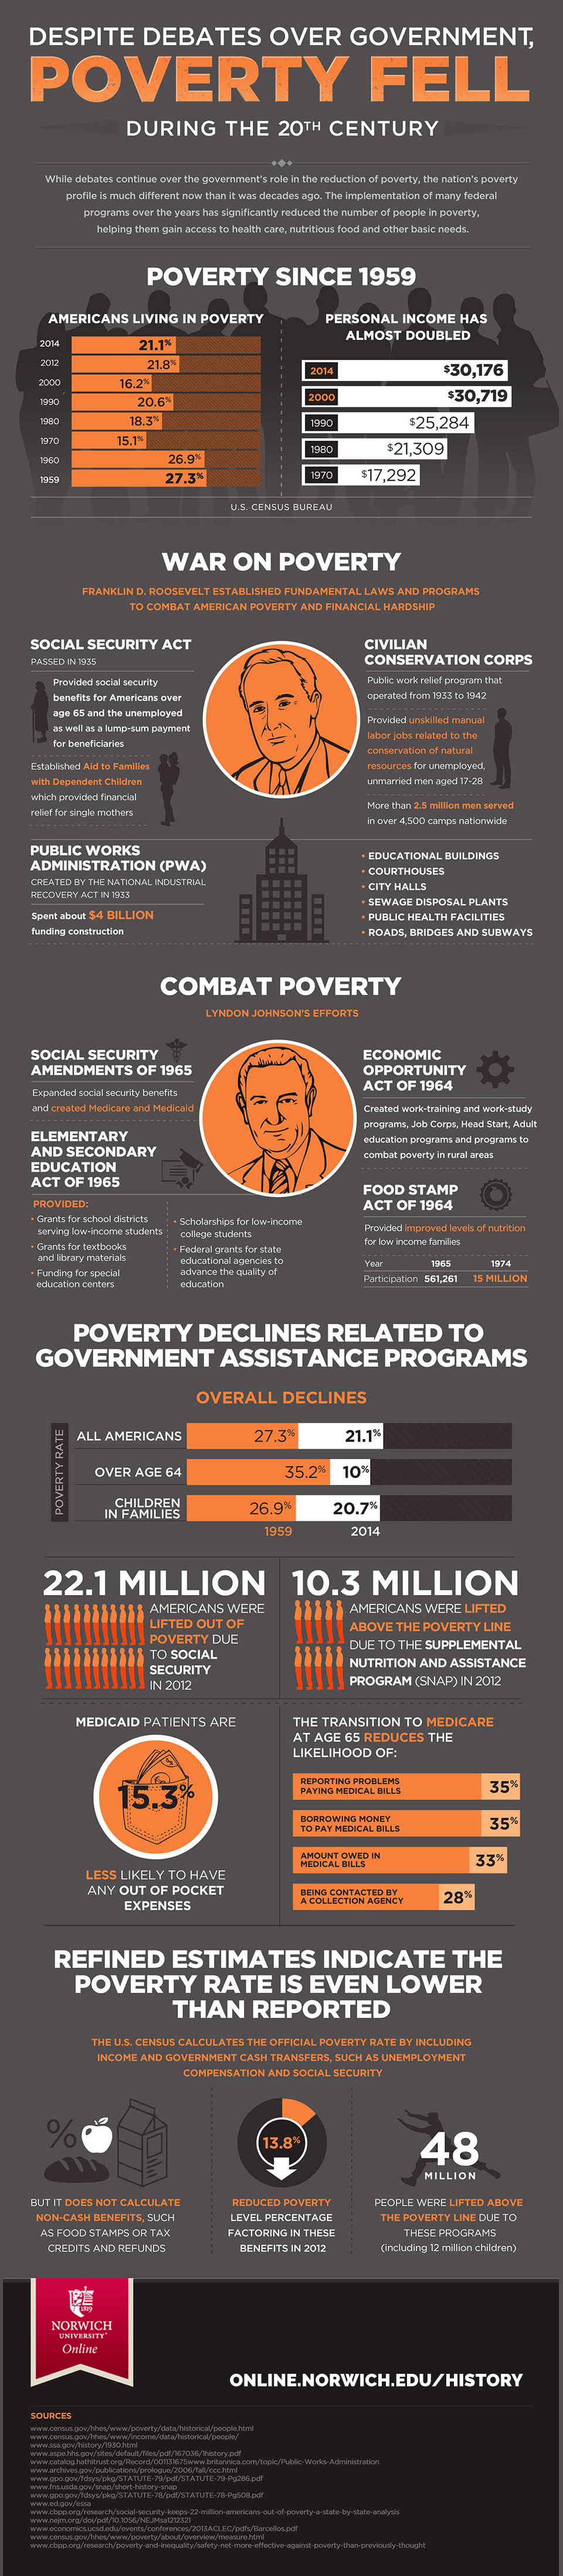 poverty during the 20th century infographic image